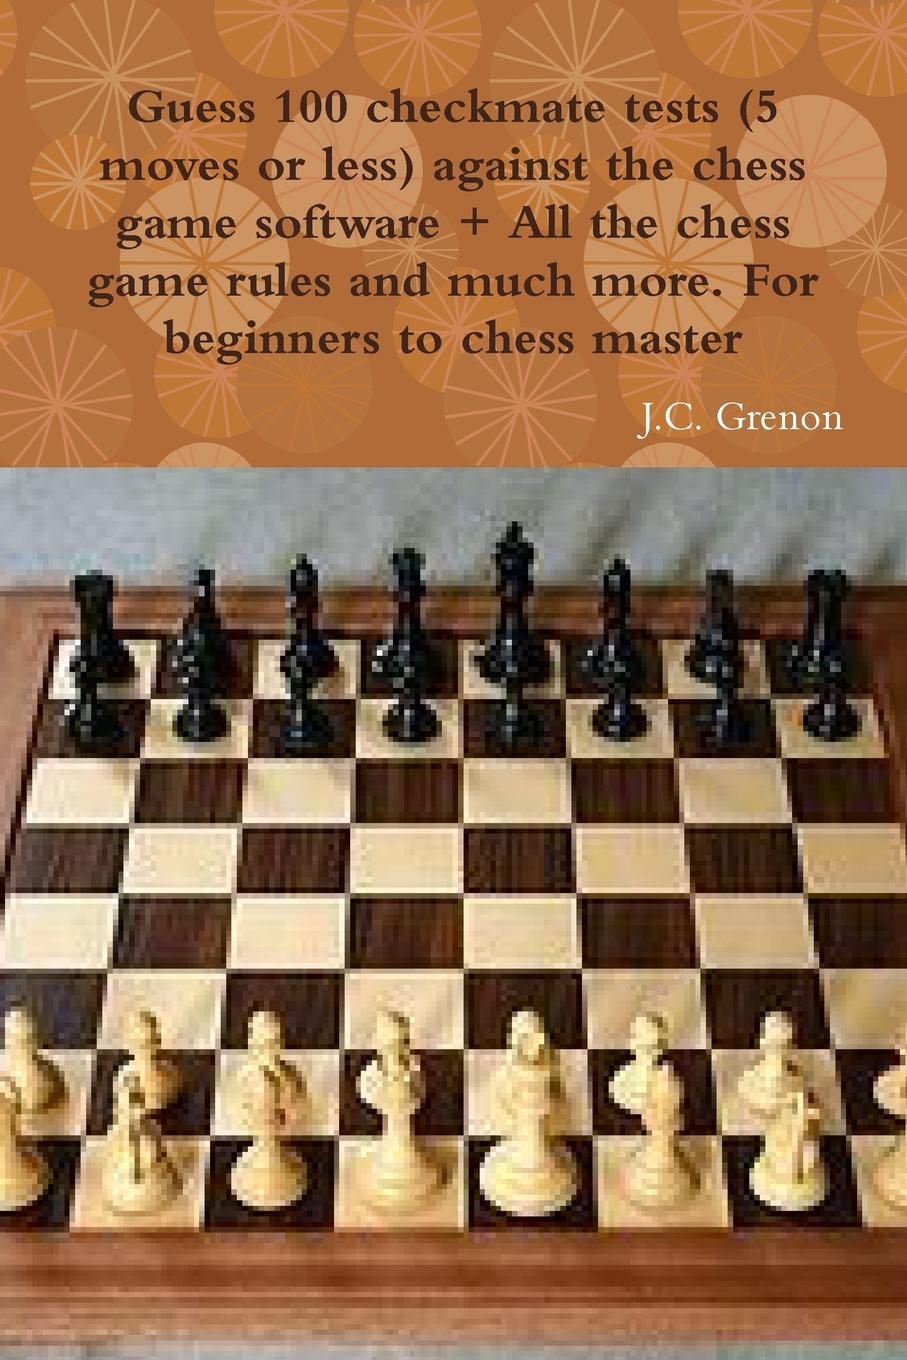 J.C. Grenon Guess 100 checkmate tests (5 moves or less) against the high chess software . All the chess rules and much more цена и фото